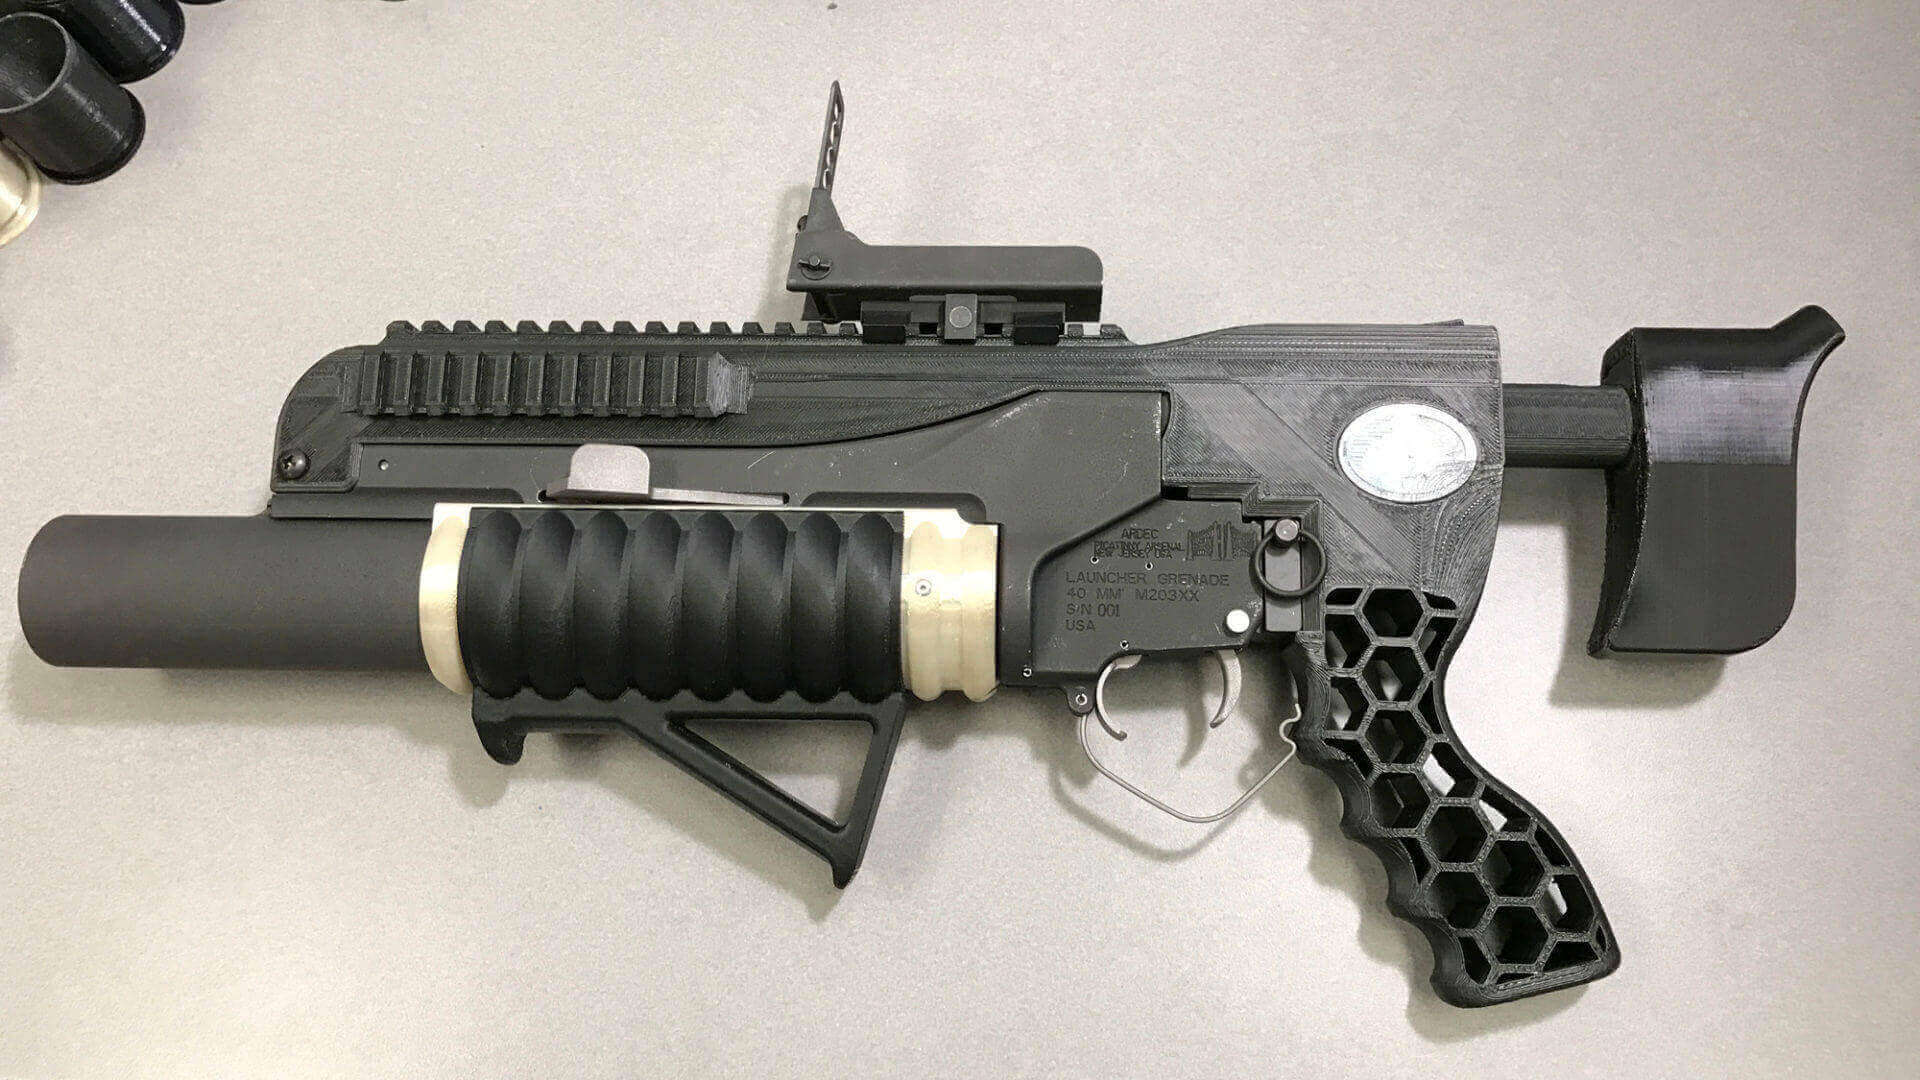 R.A.M.B.O. is a 3D Printed Grenade Launcher Made by U.S. Army | All3DP